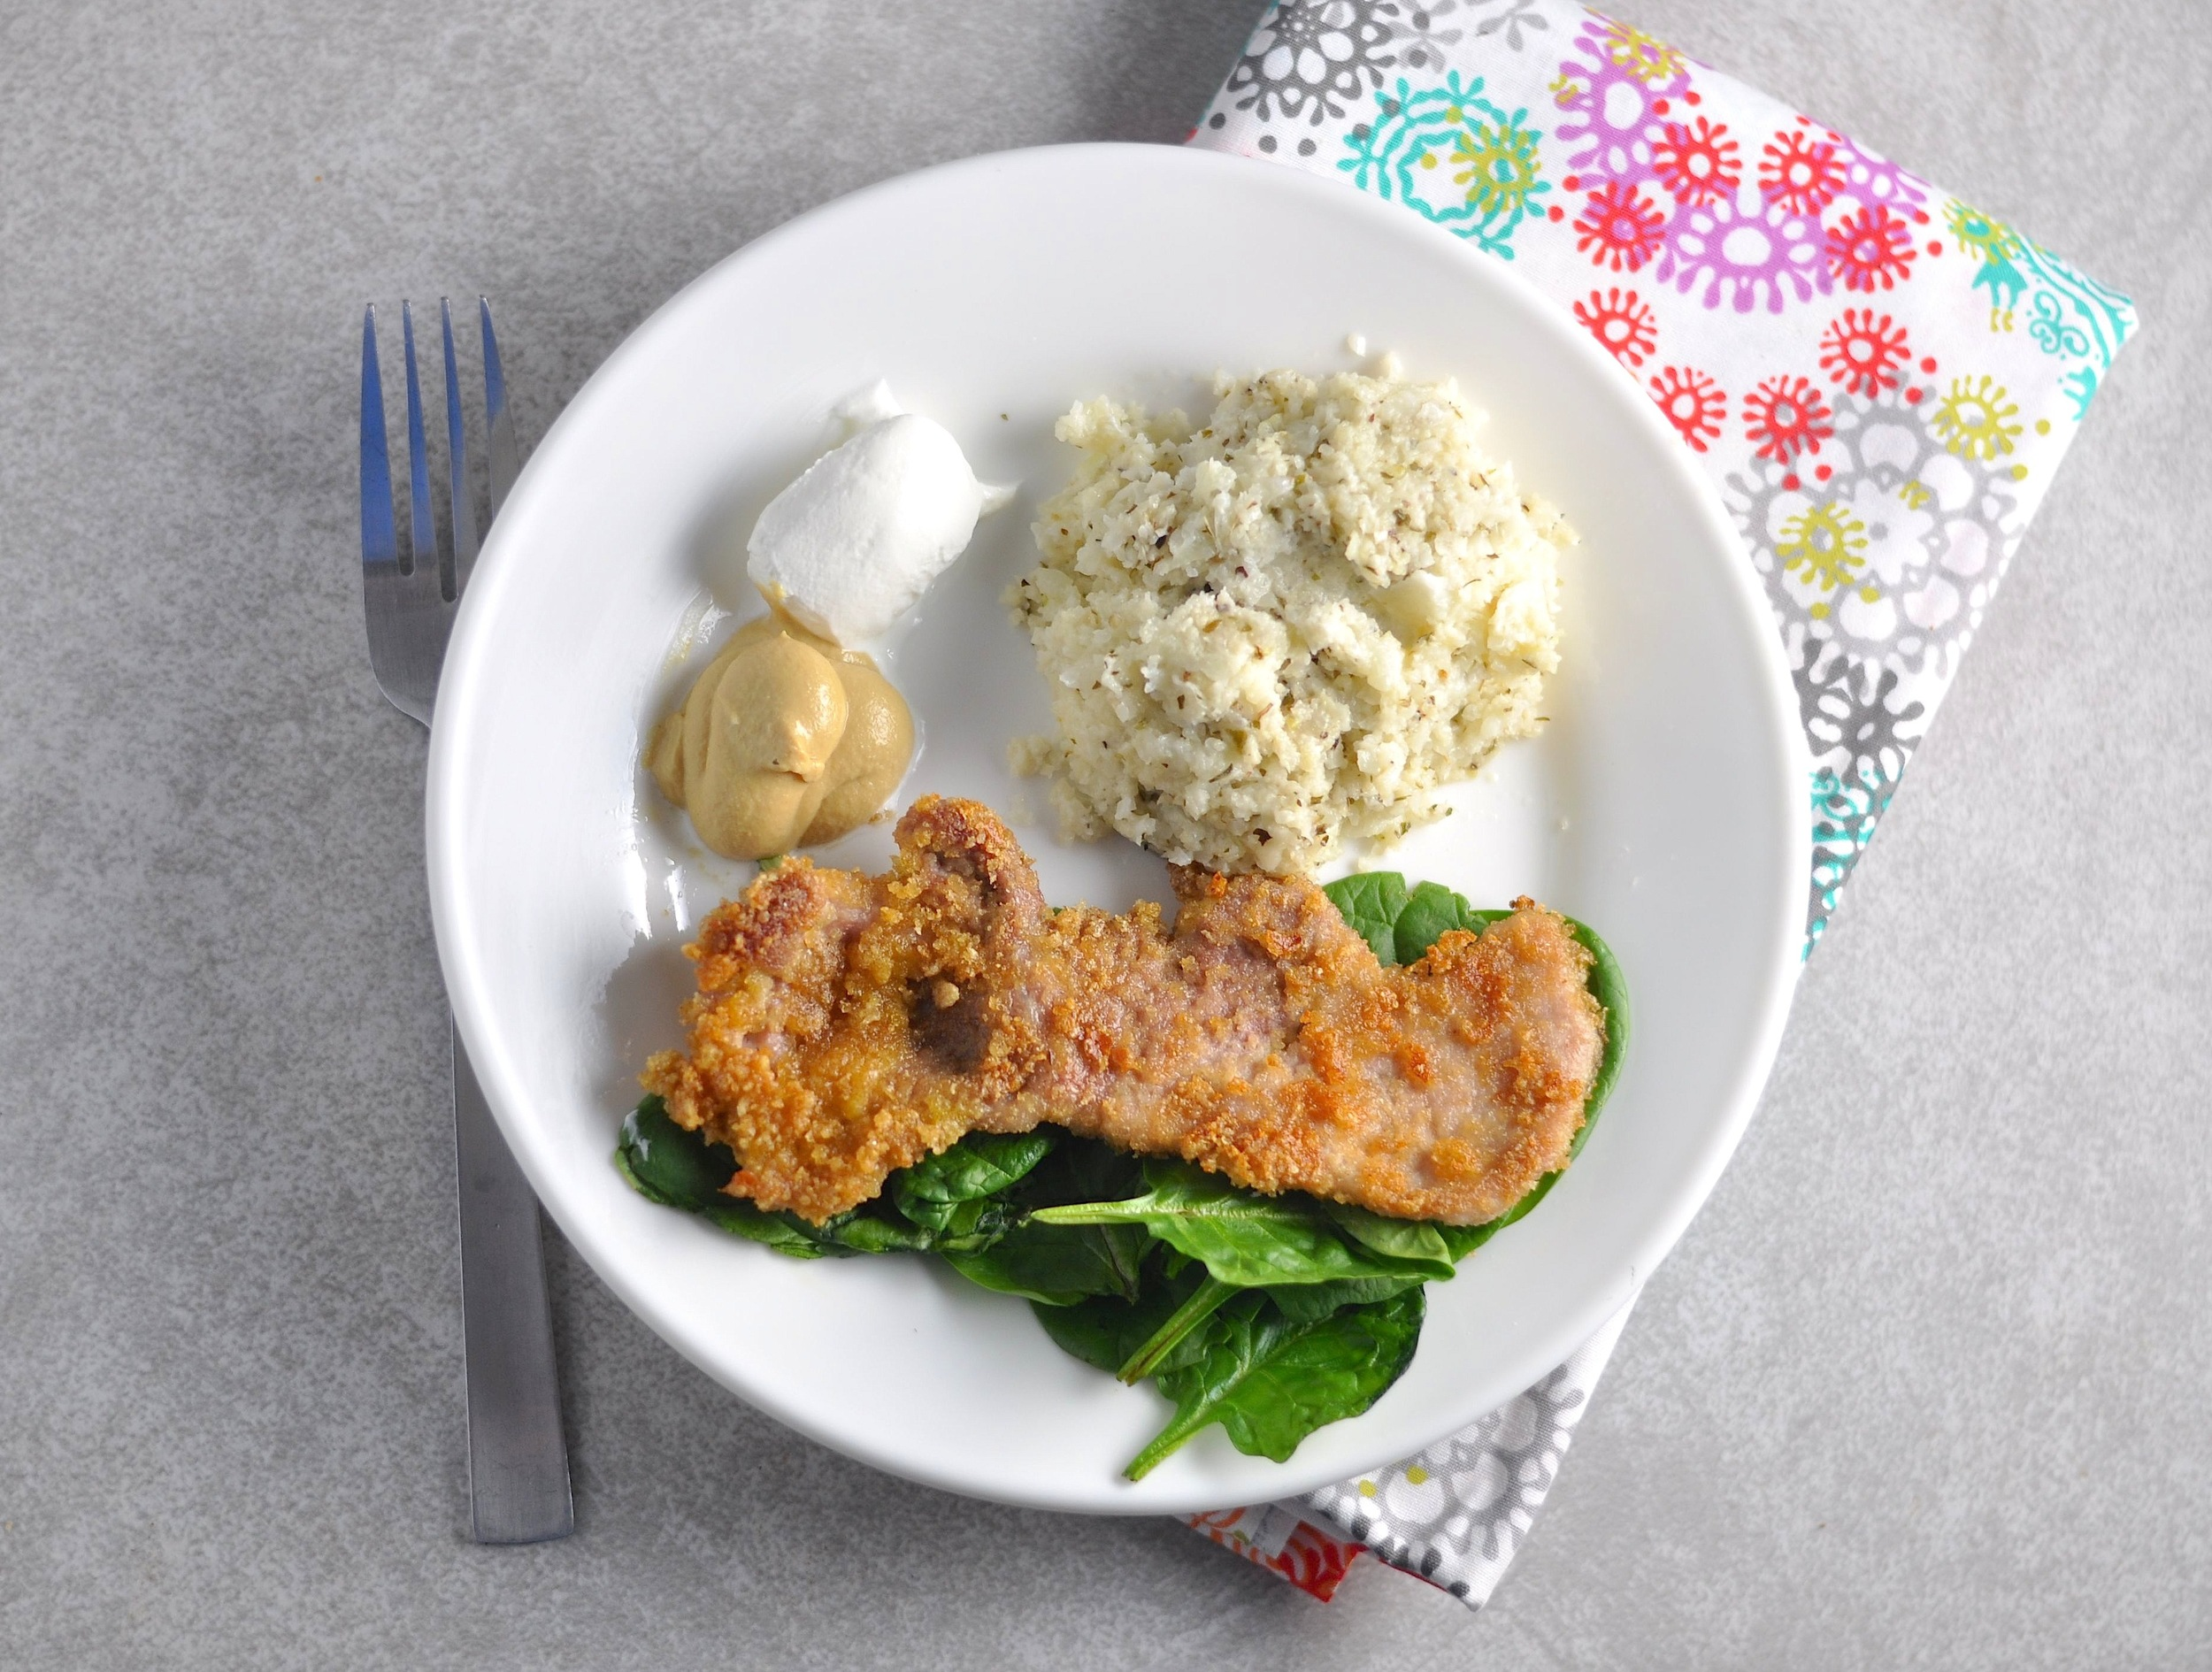 crispy pork cutlets and cauli mashed